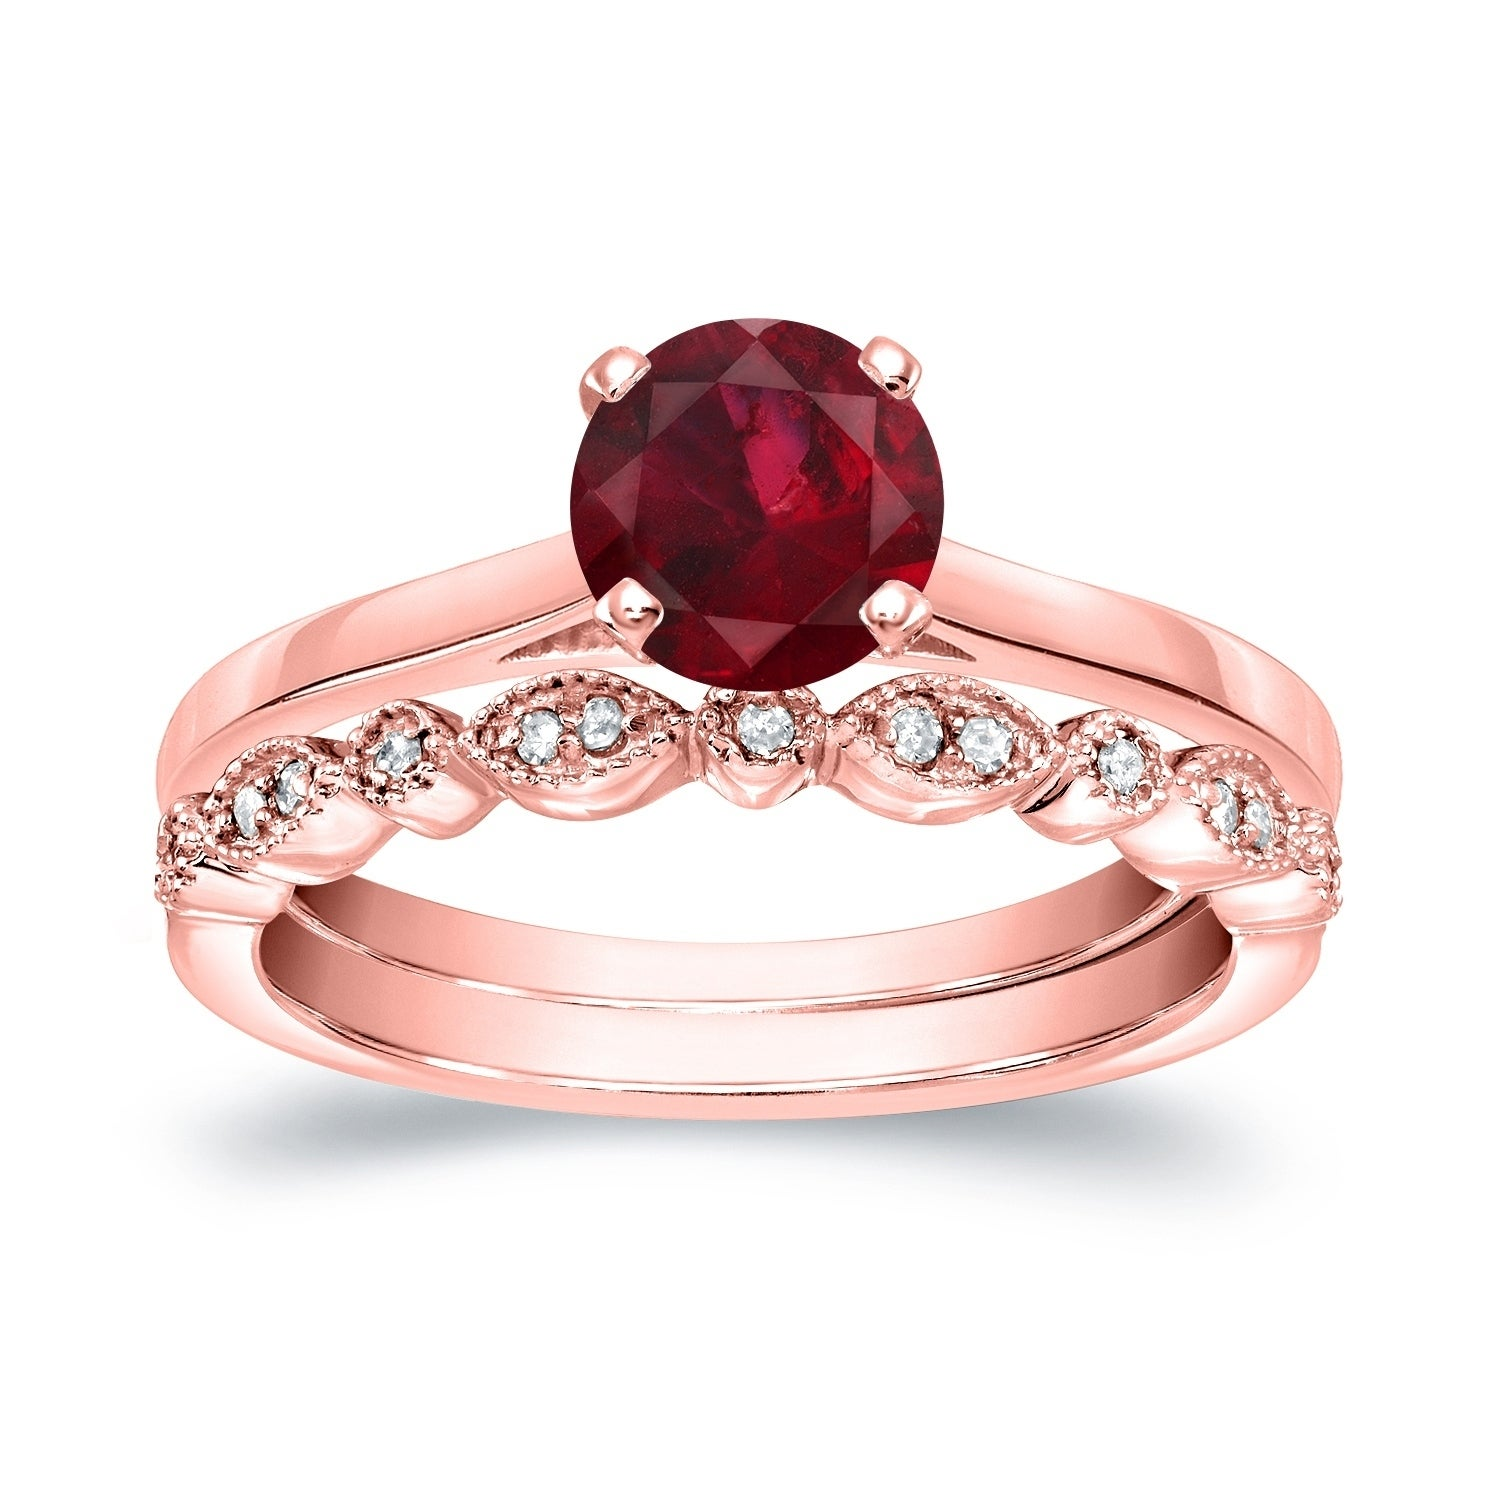 Buy White, Red Diamond Rings Online at Overstock.com | Our Best ...